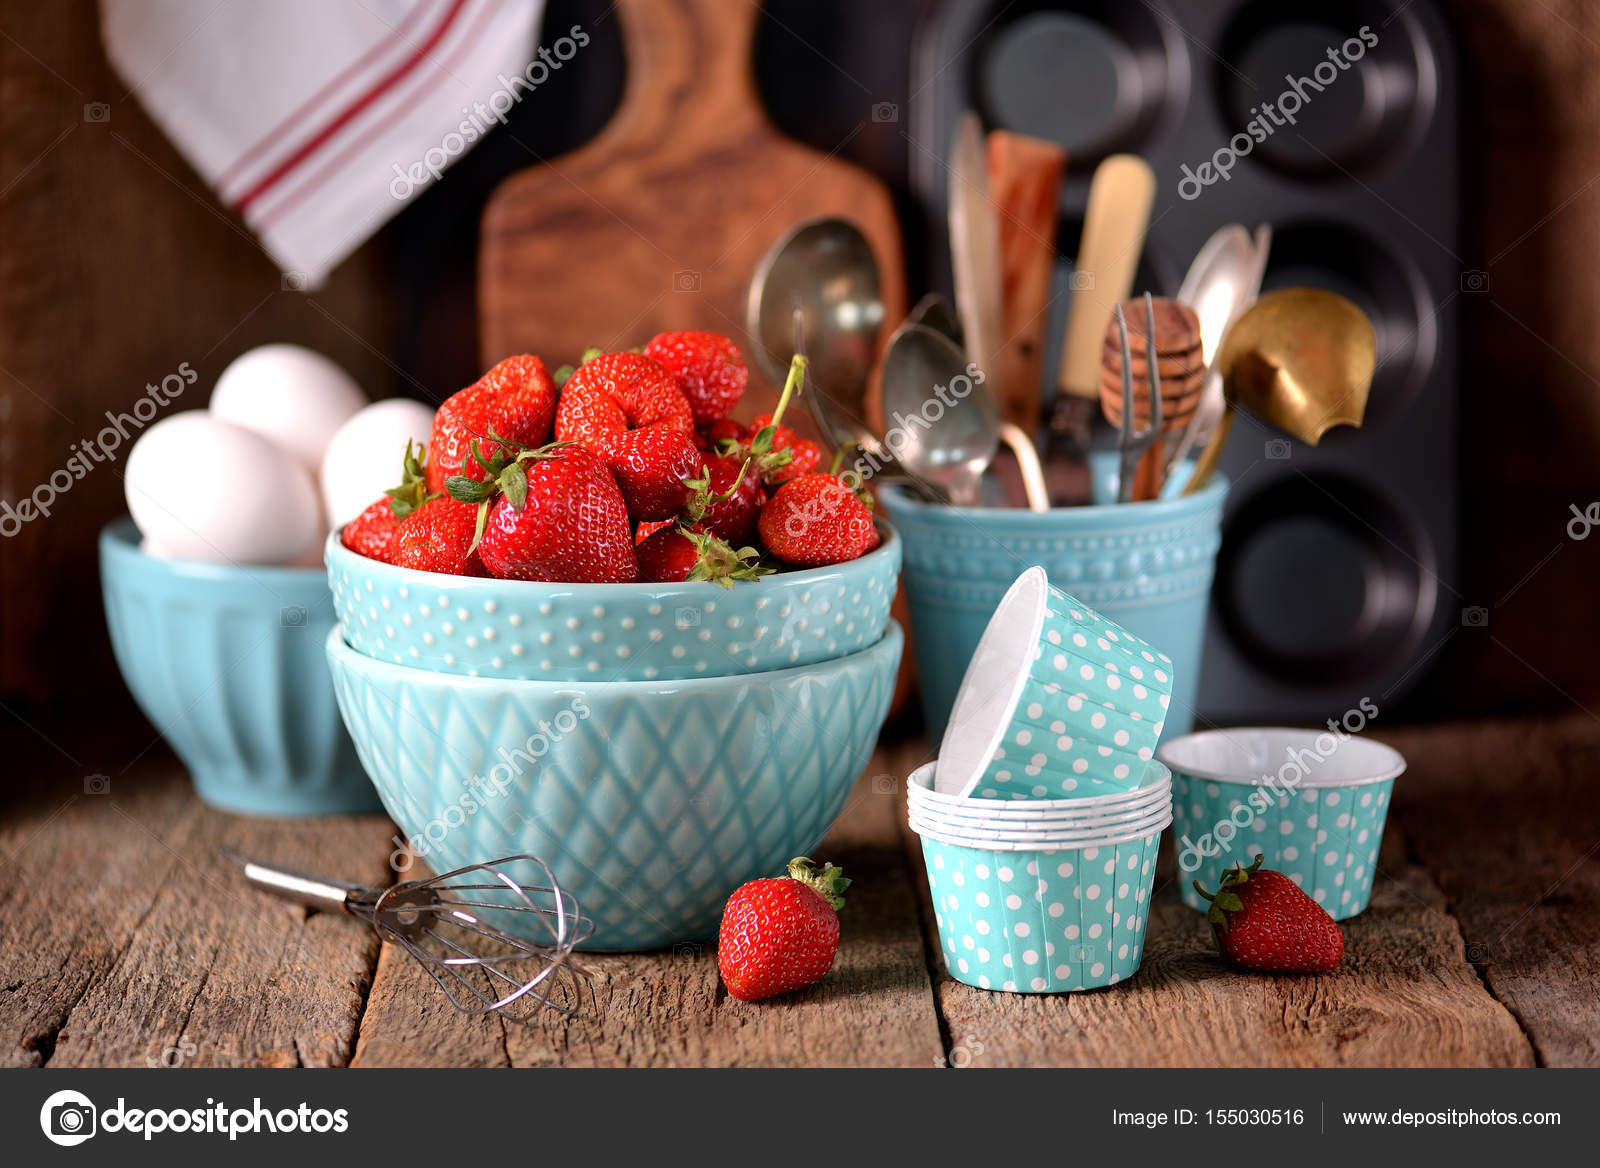 Kitchen Accessories For Cooking Muffins, Organic Strawberries And Eggs On  An Old Wooden Background.